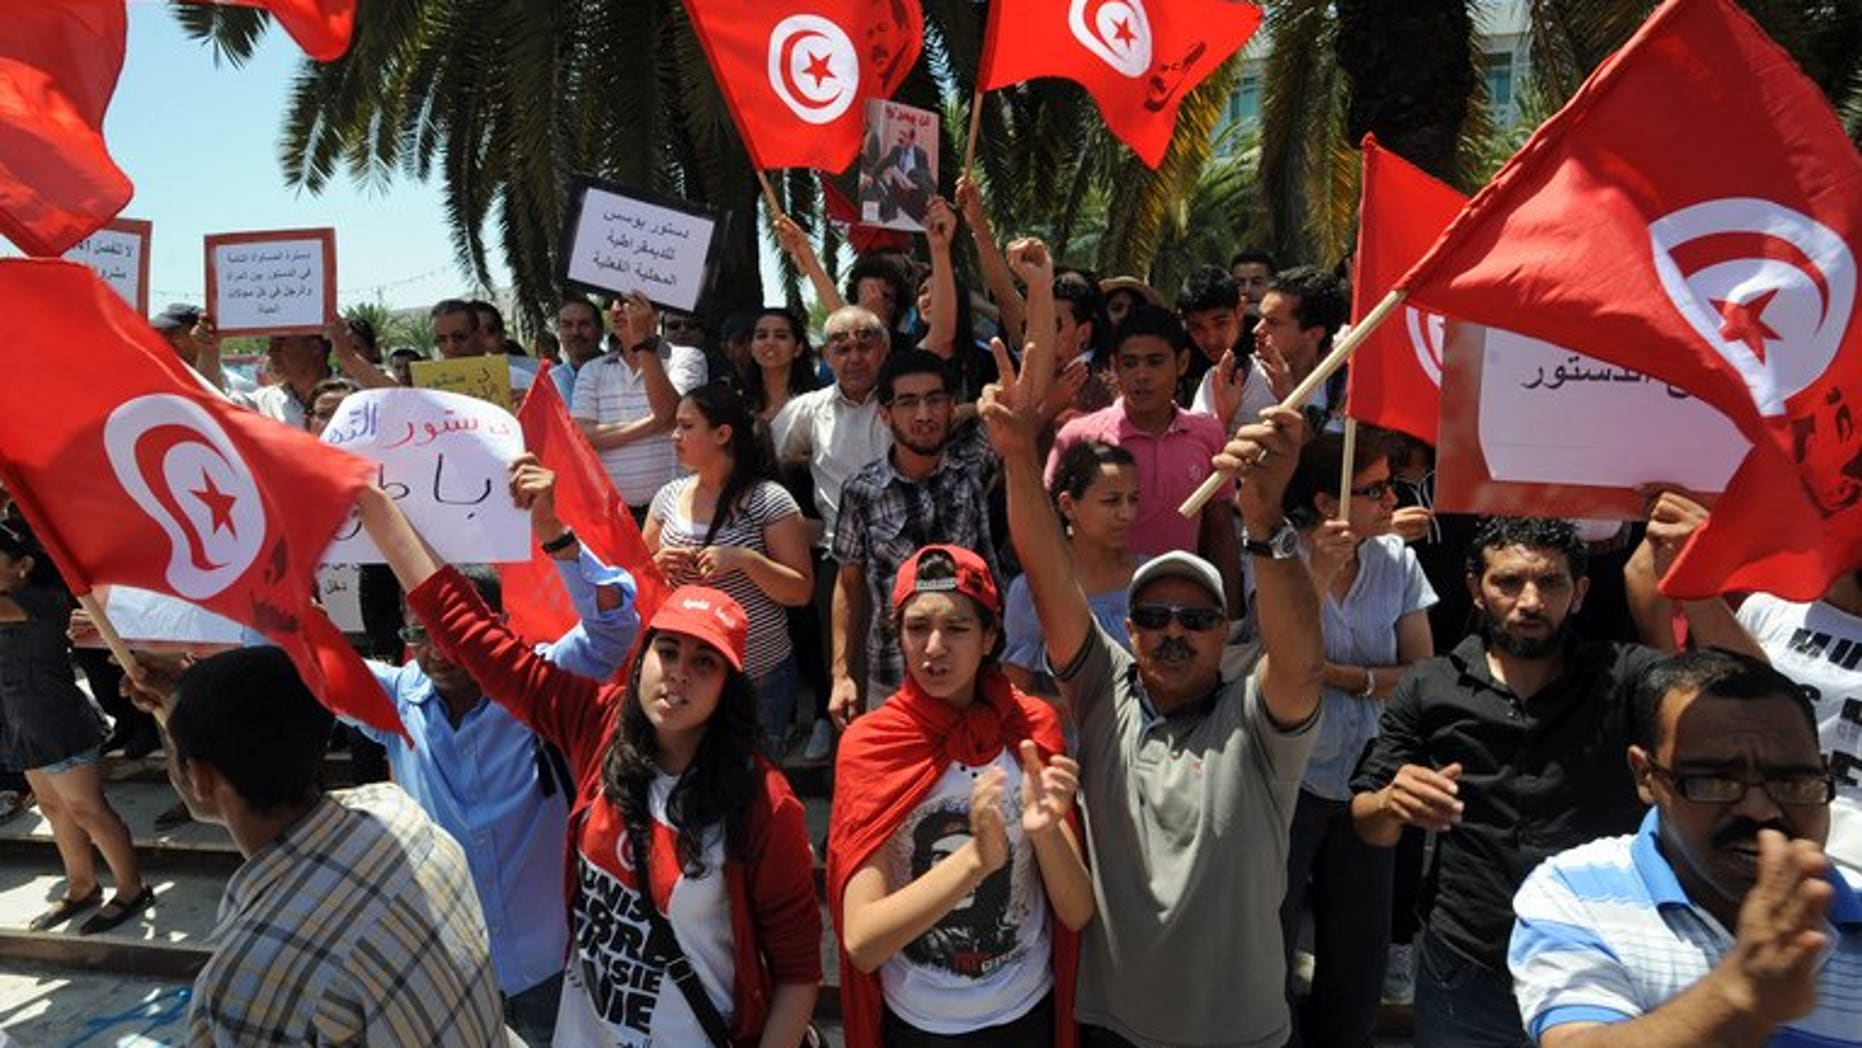 Tunisians shout slogans against the ruling Ennahda Party during a protest in front of the Constituent Assembly on July 1, 2013 in Tunis. Troubled French automaker PSA Peugeot Citroen on Tuesday opened a new plant in central China, vowing to raise its share of the world's biggest car market.